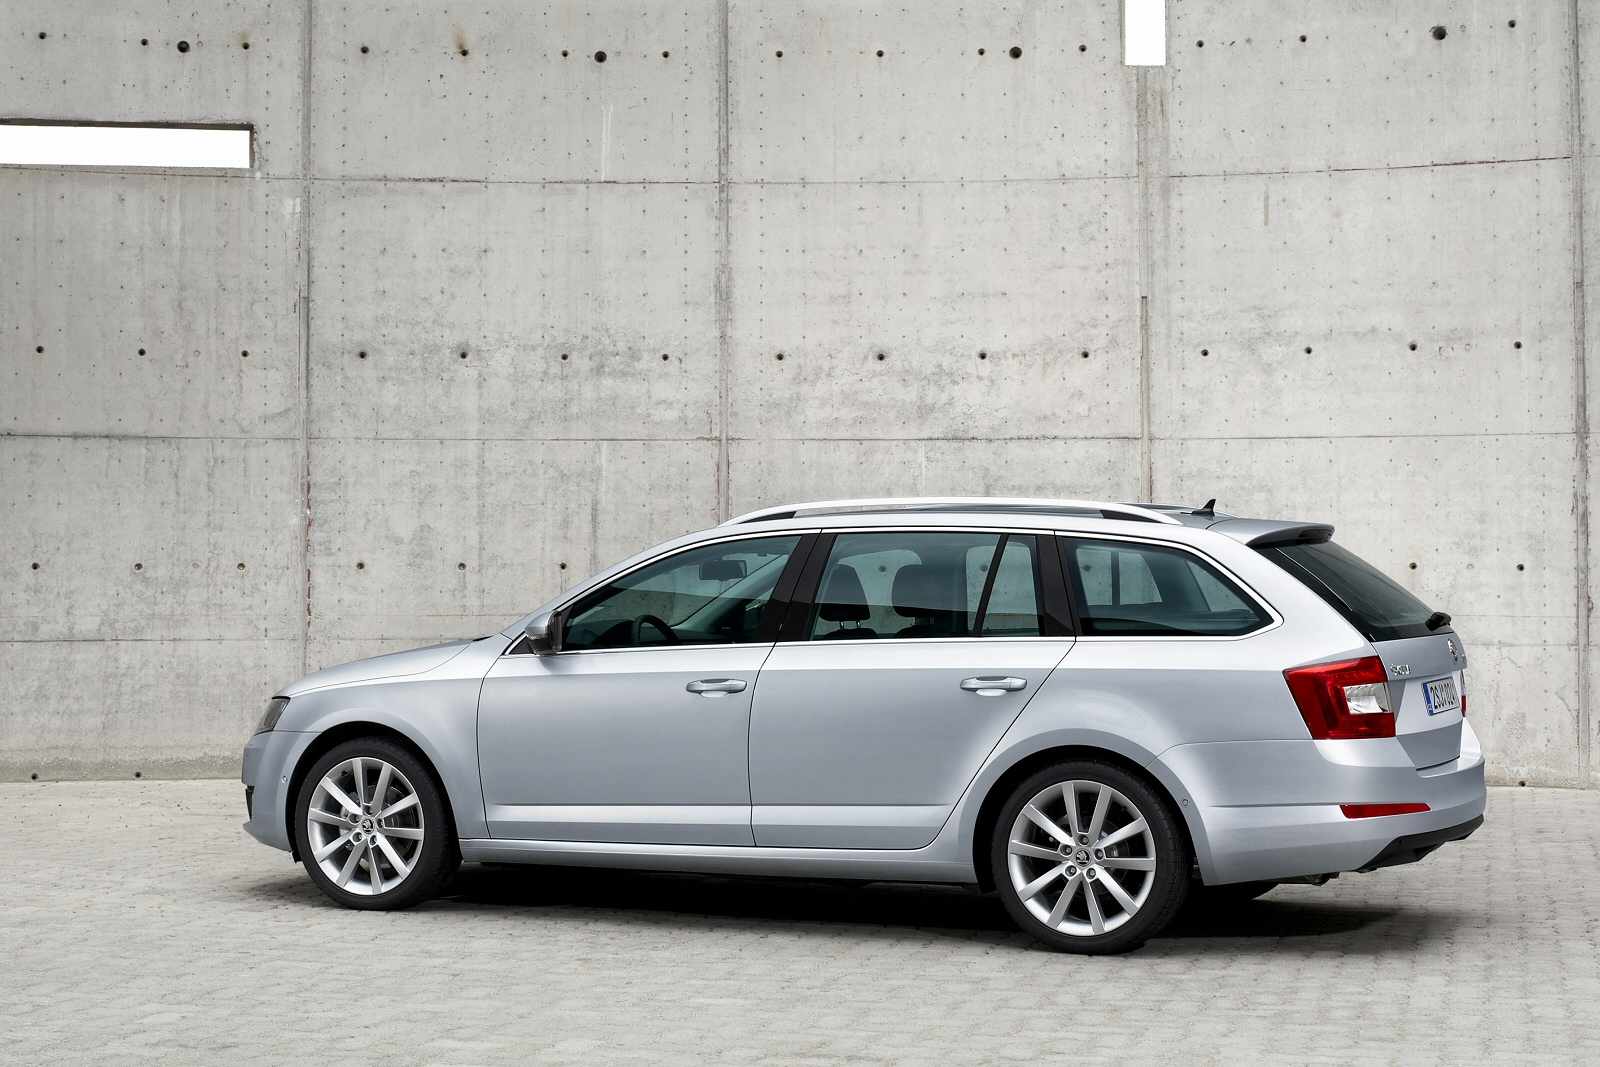 Image three of a Skoda Octavia Estate